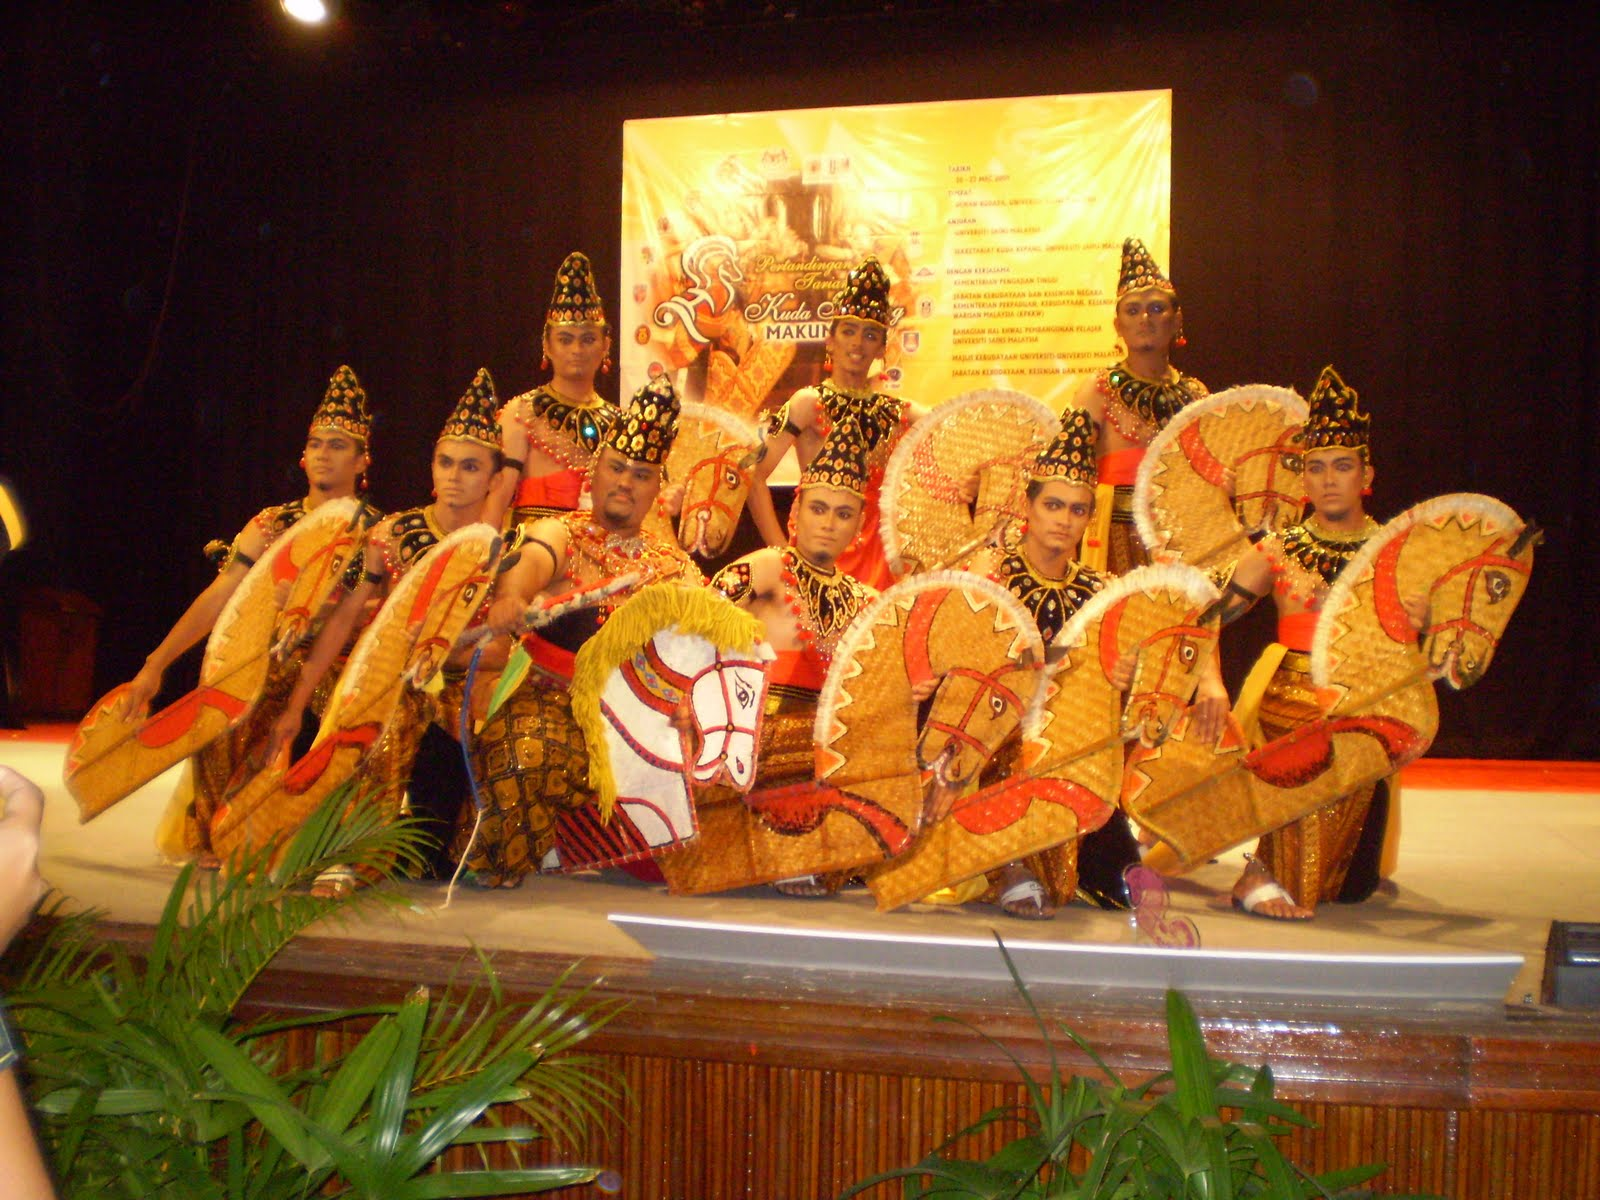 the malaysian culture Malaysia has a mix of several cultures 58 percent of the population is malay, 24 percent are chinese and 8 percent are indians their customs are significantly.